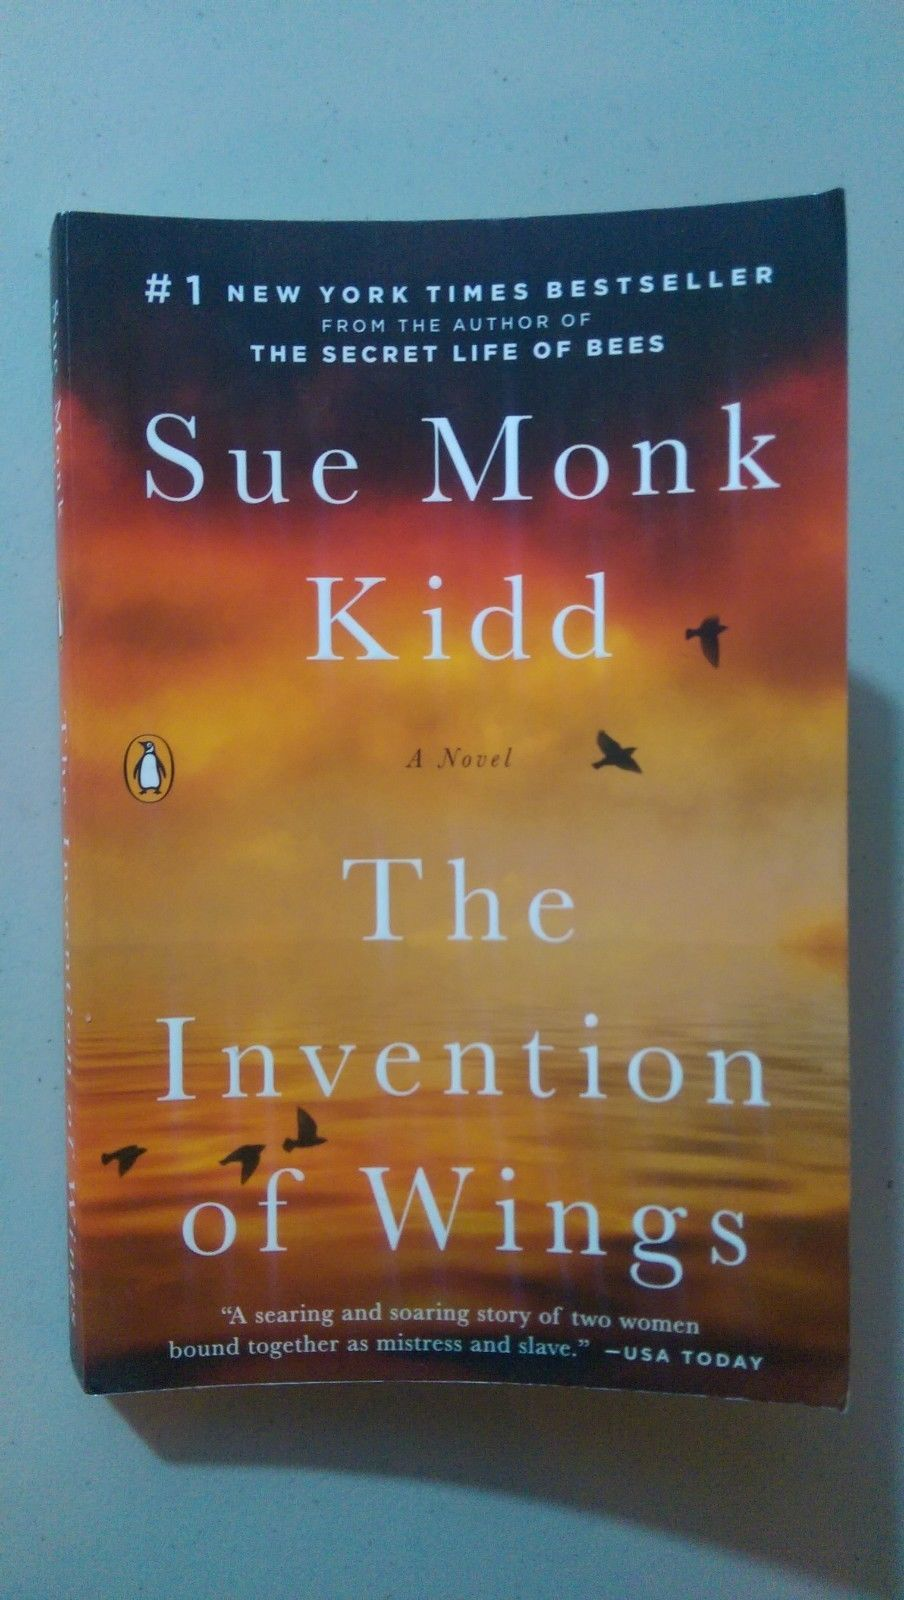 an analysis of the secret life of bees a book by sue monk kidd Summary of the secret life of bees by sue monk kidd by instaread gives an in depth analysis of the story, discussing the main characters, lack of character development for some of the characters, and the relationships and themes.